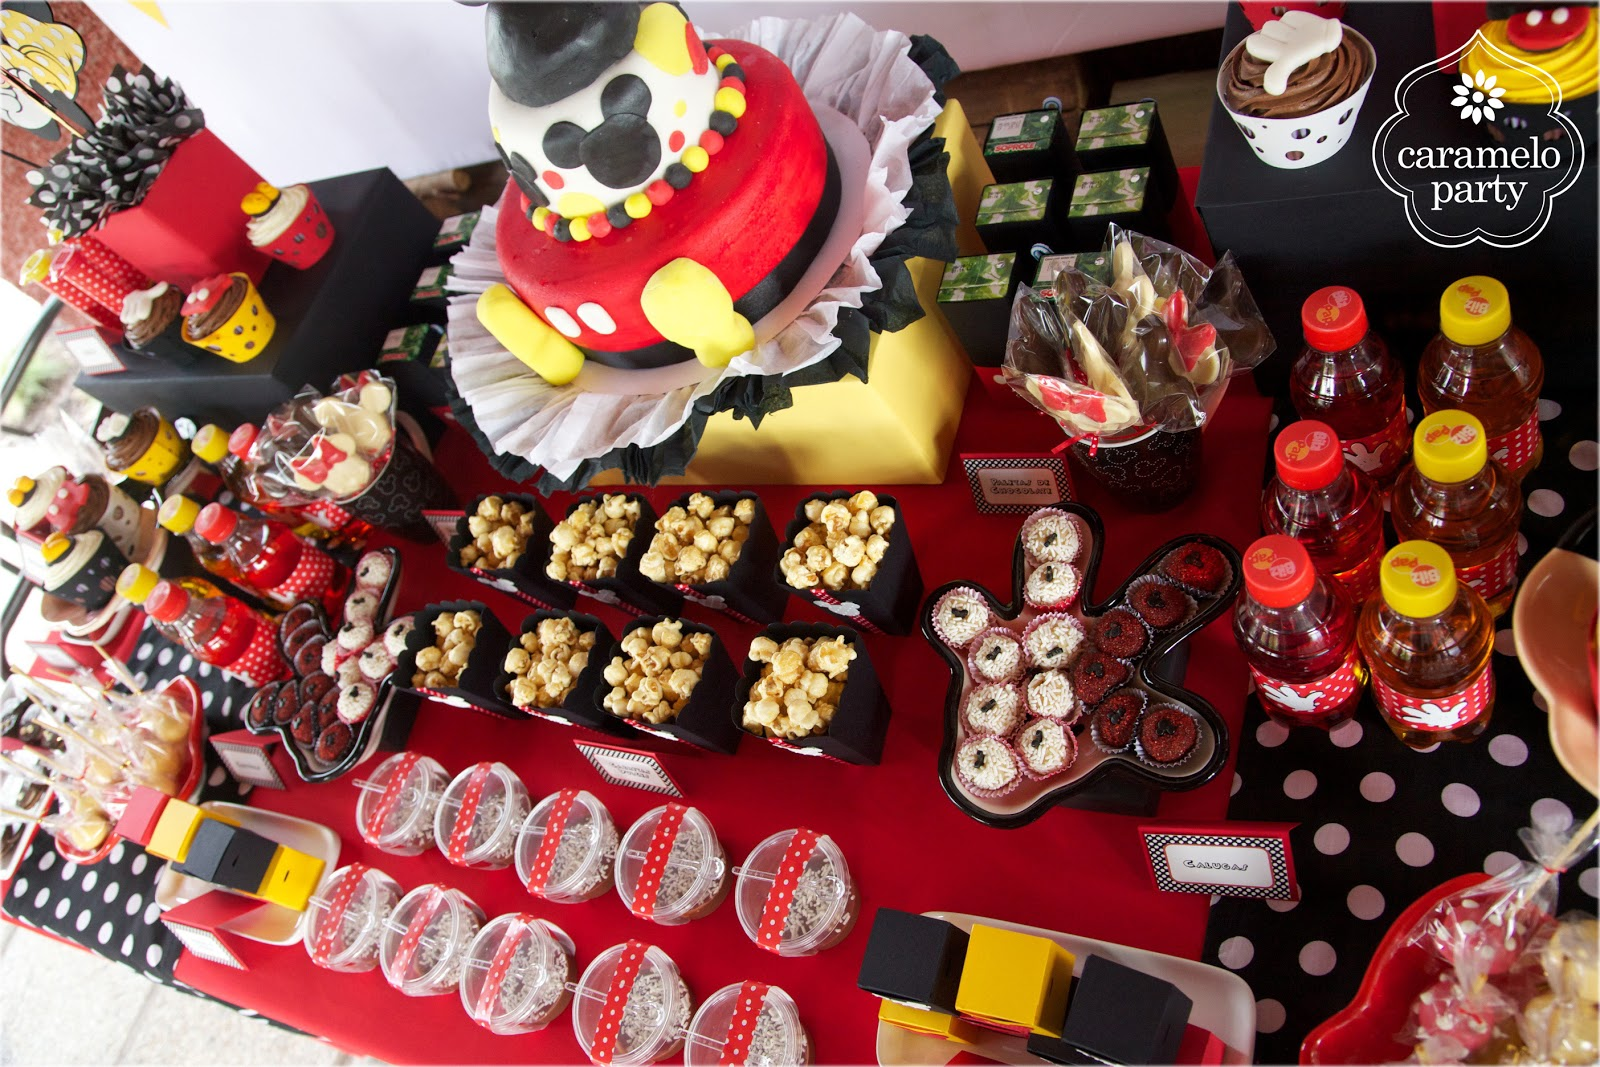 Mickey Mouse Decoraciones Para Fiestas ~ Download image Fiesta De Minnie Y Mickey Mouse PC, Android, iPhone and